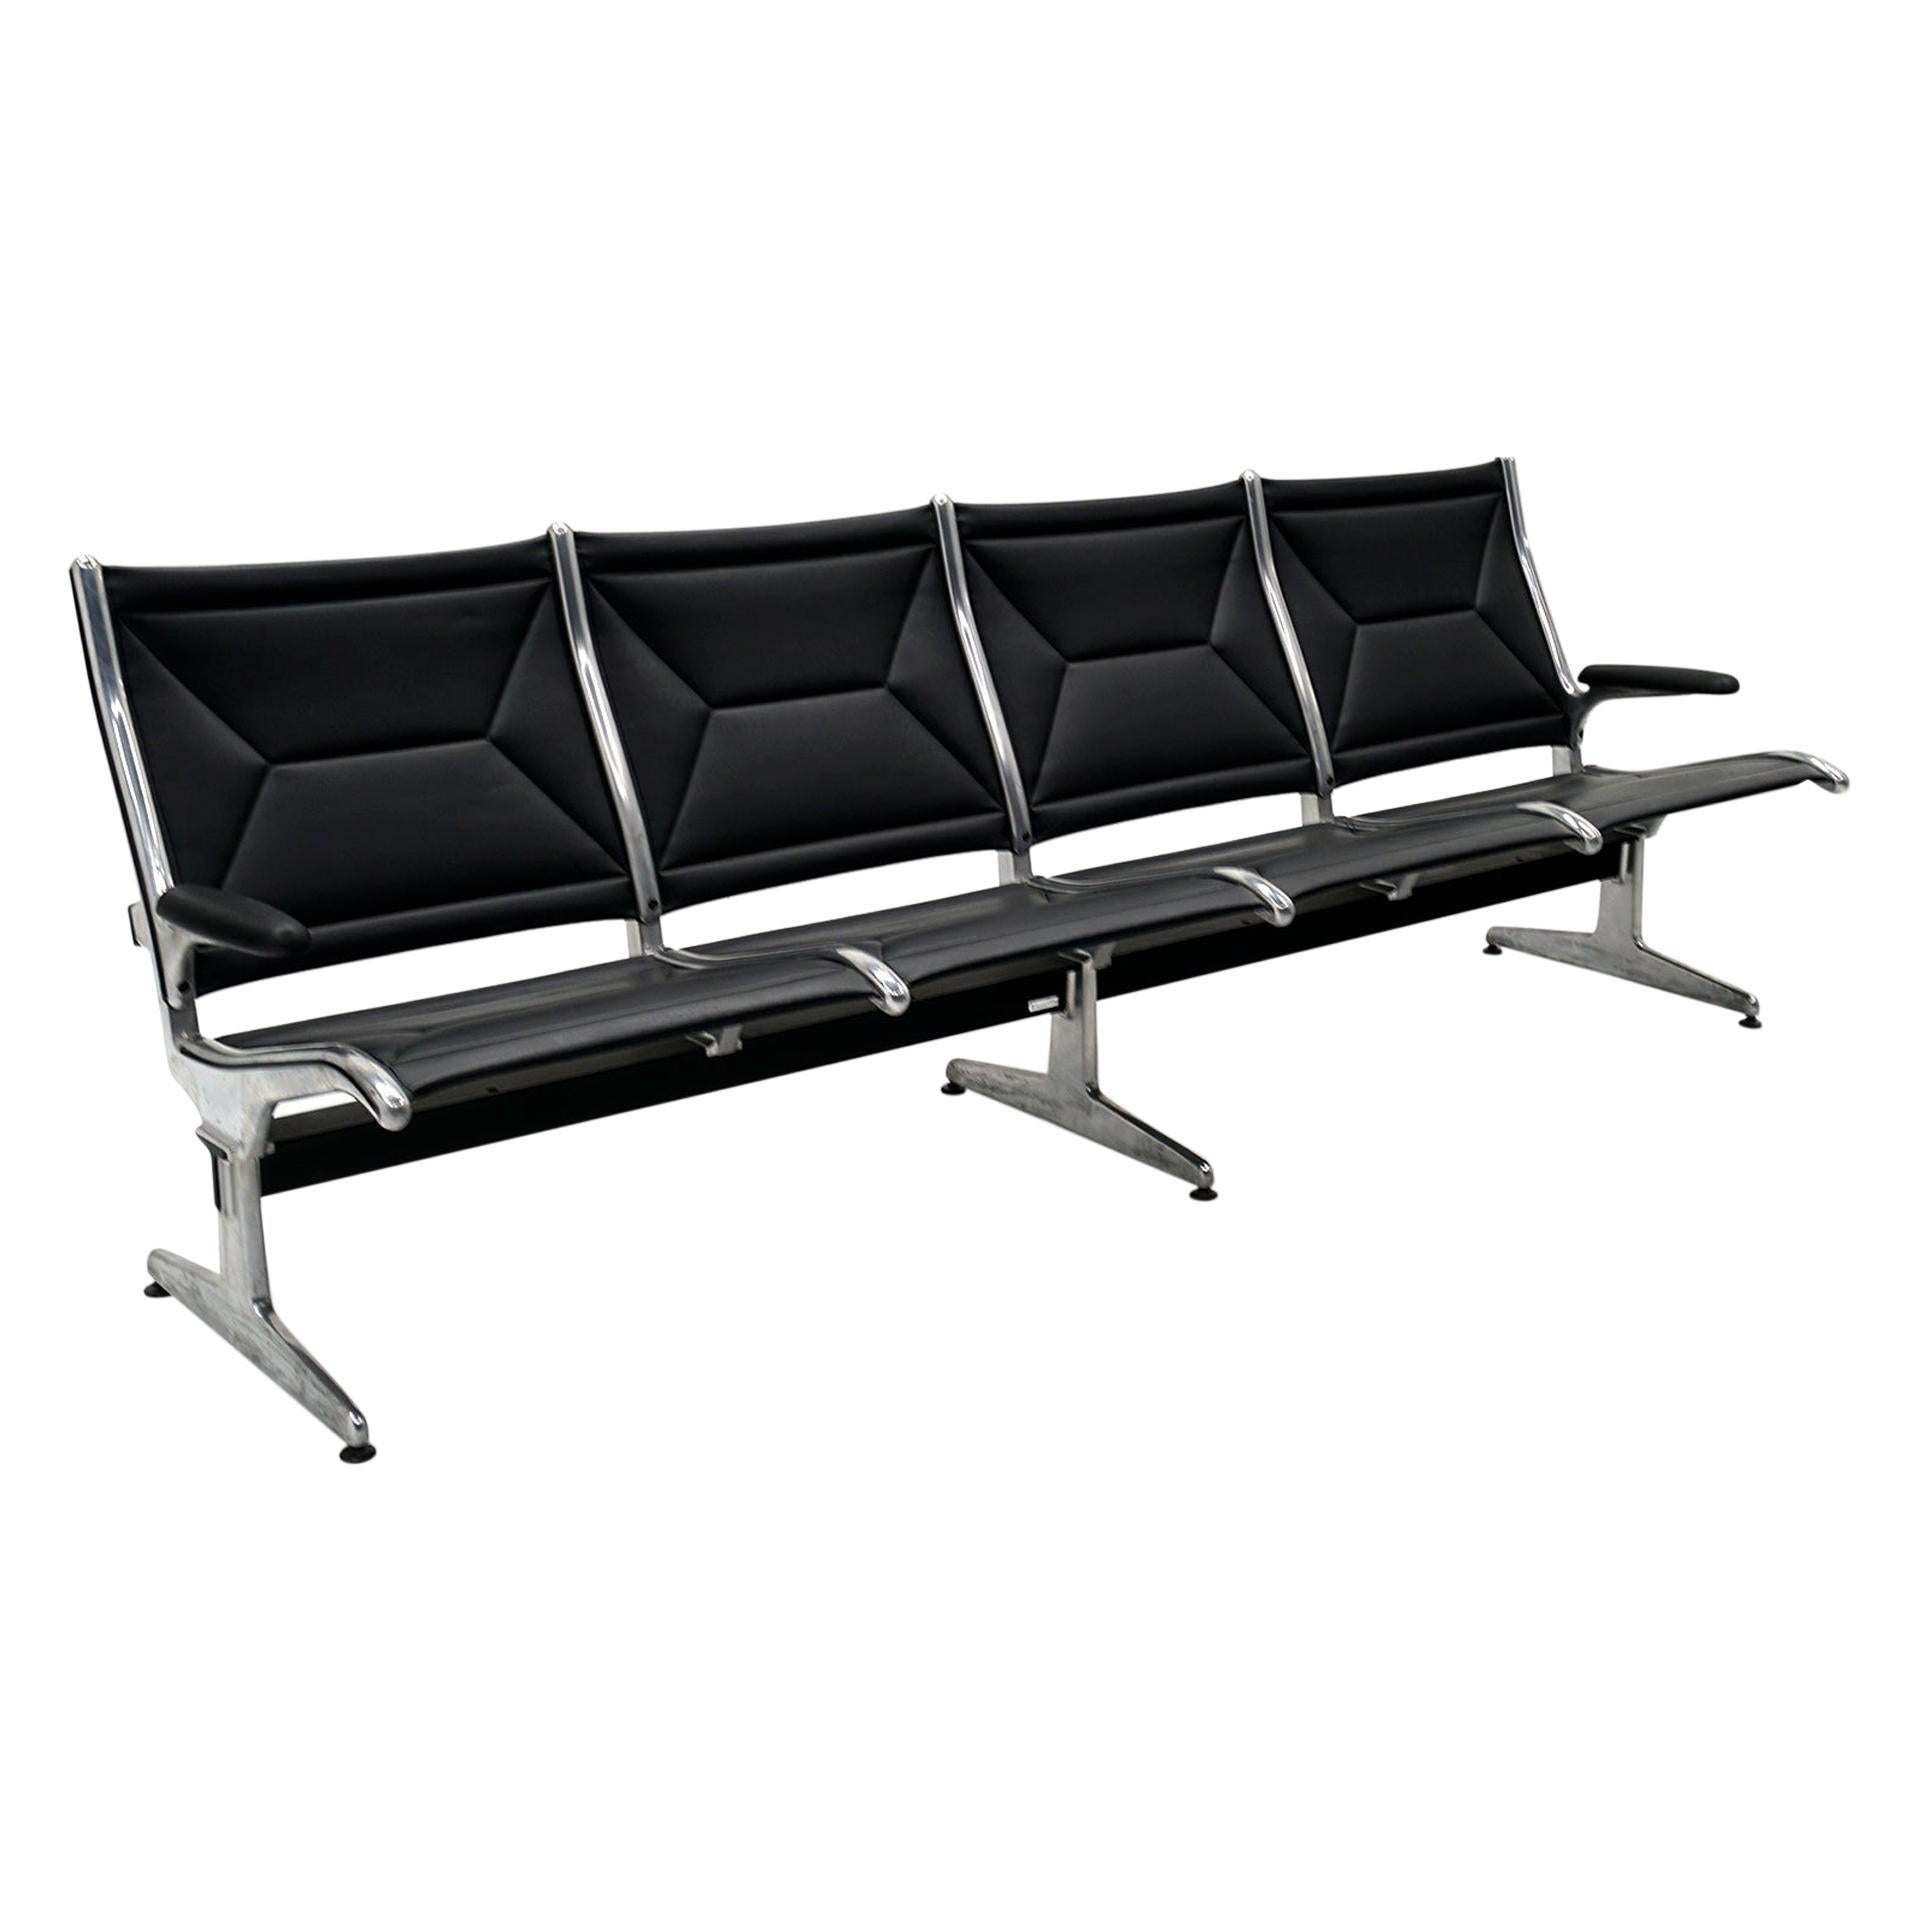 Four Seat Tandem Unit by Charles & Ray Eames for Herman Miller, No Middle Arms